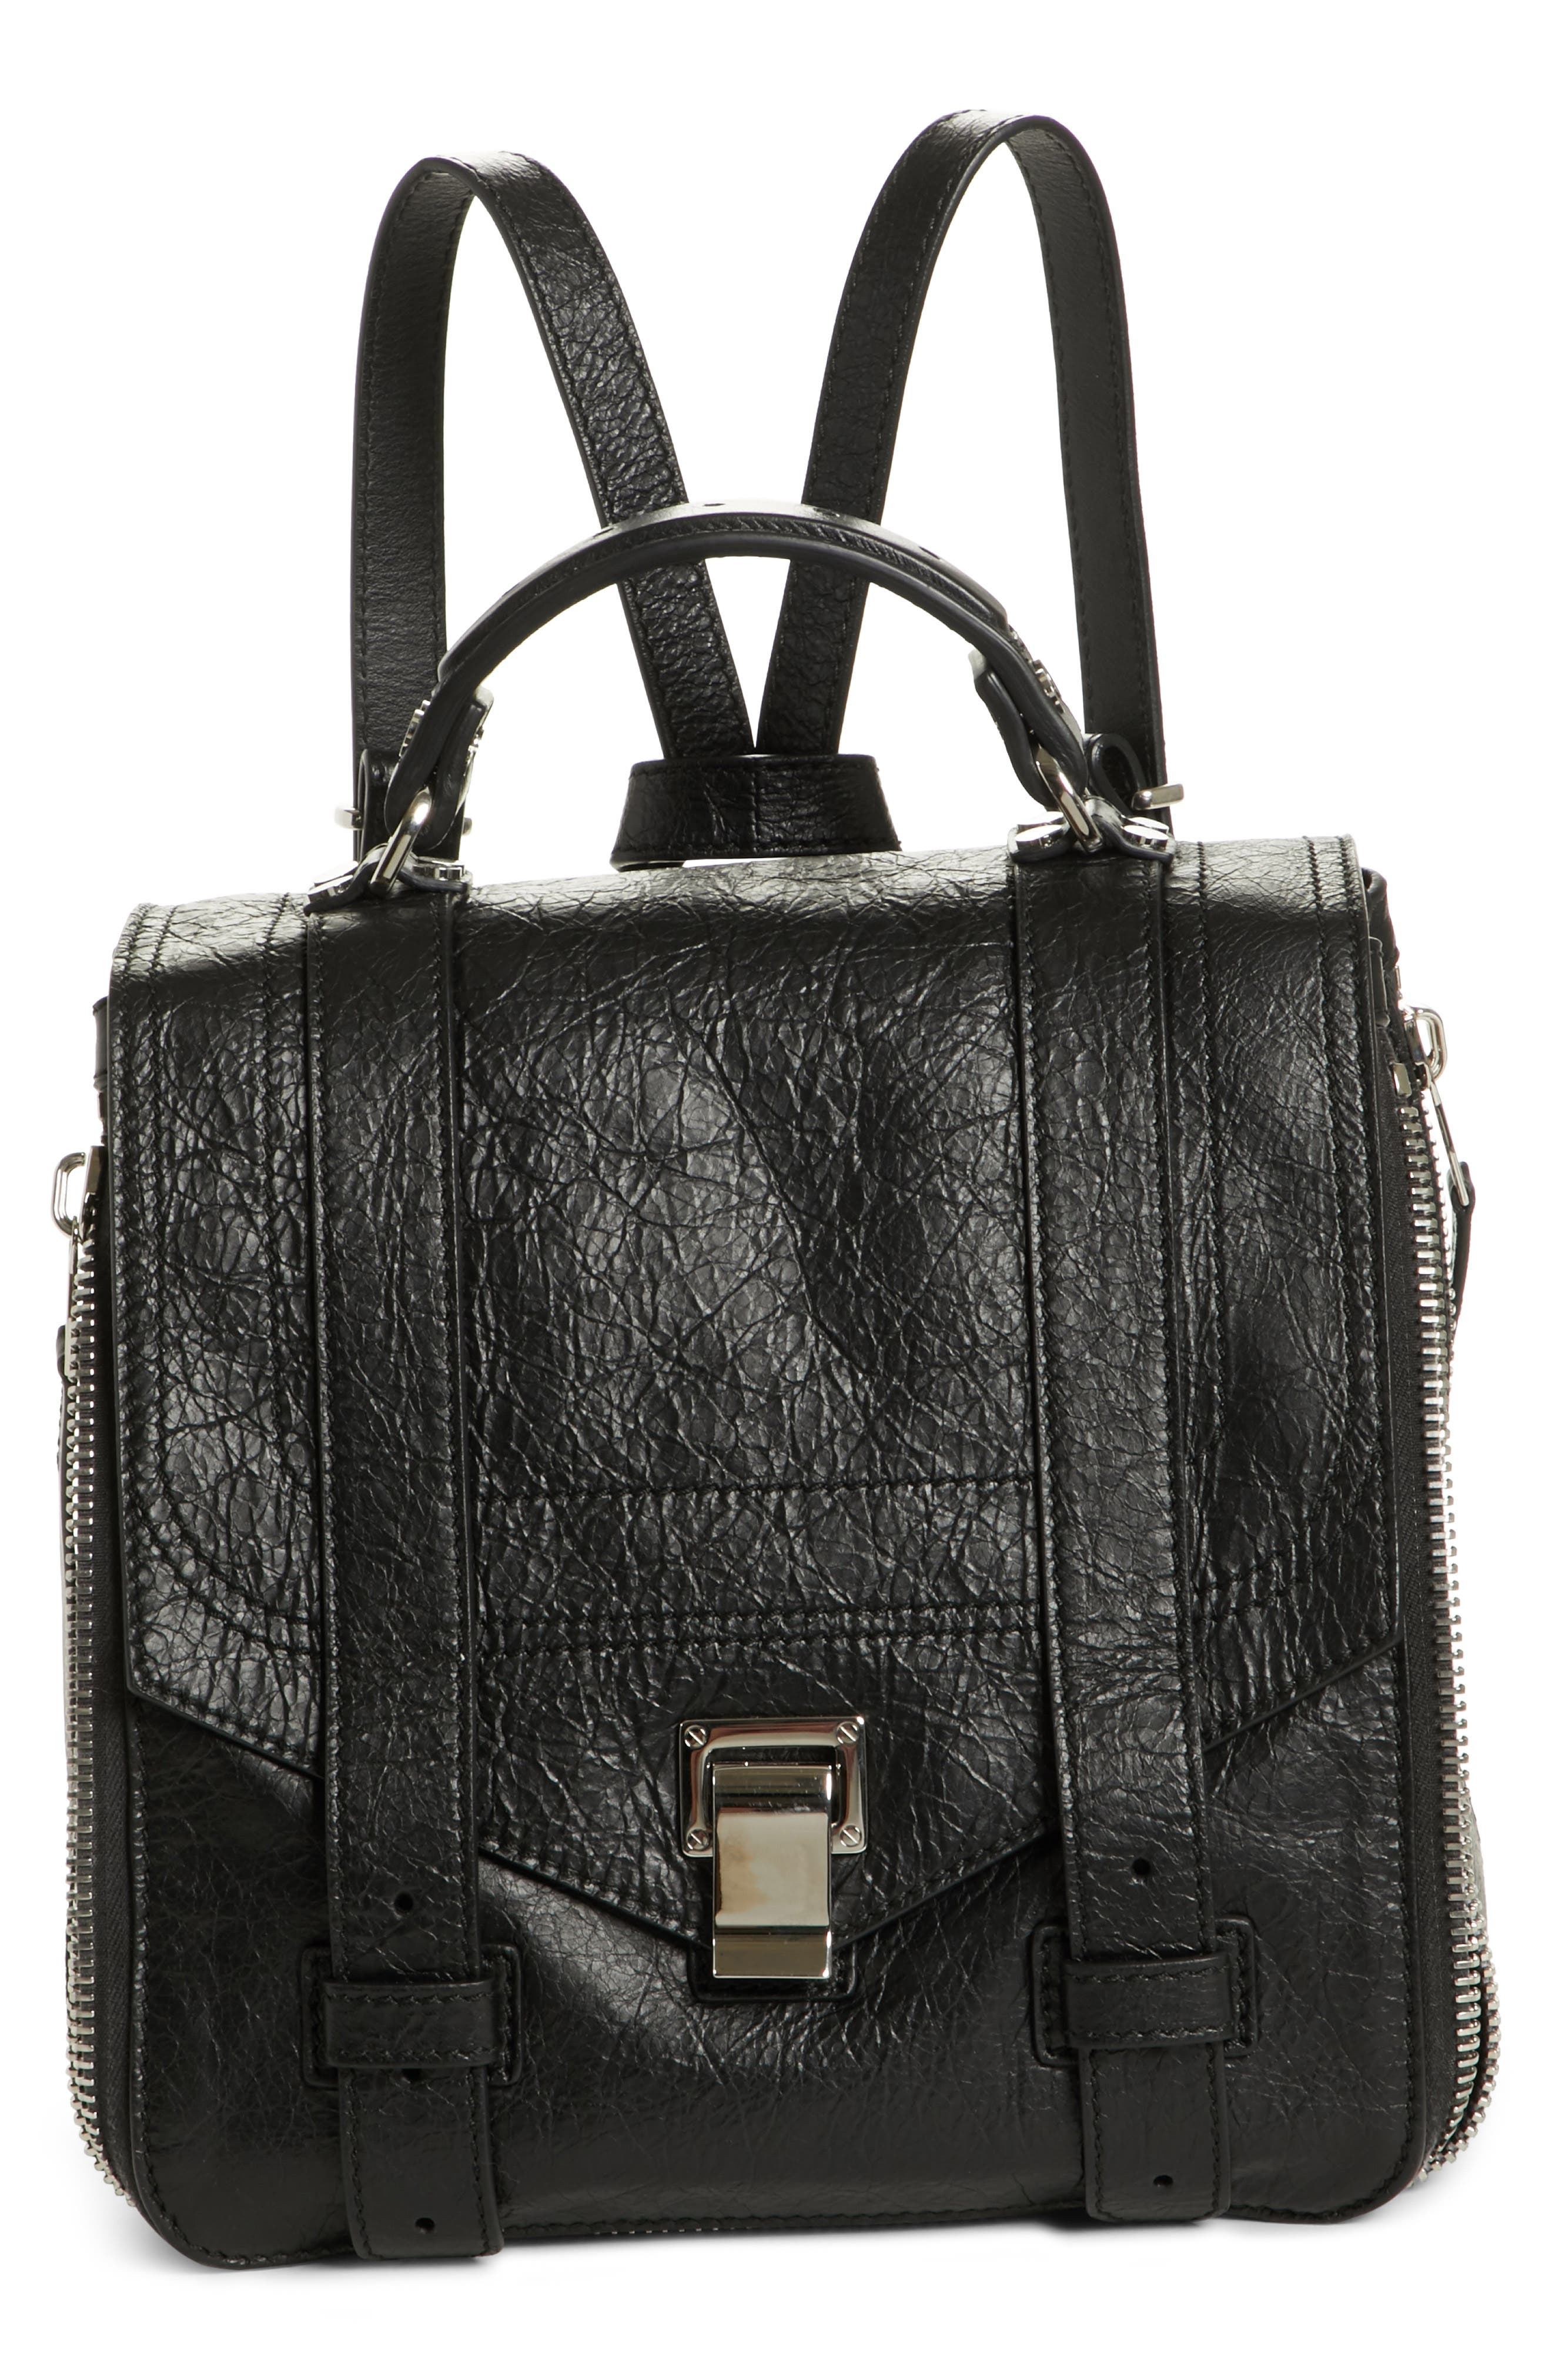 PROENZA SCHOULER, PS1 Leather Convertible Backpack, Main thumbnail 1, color, BLACK